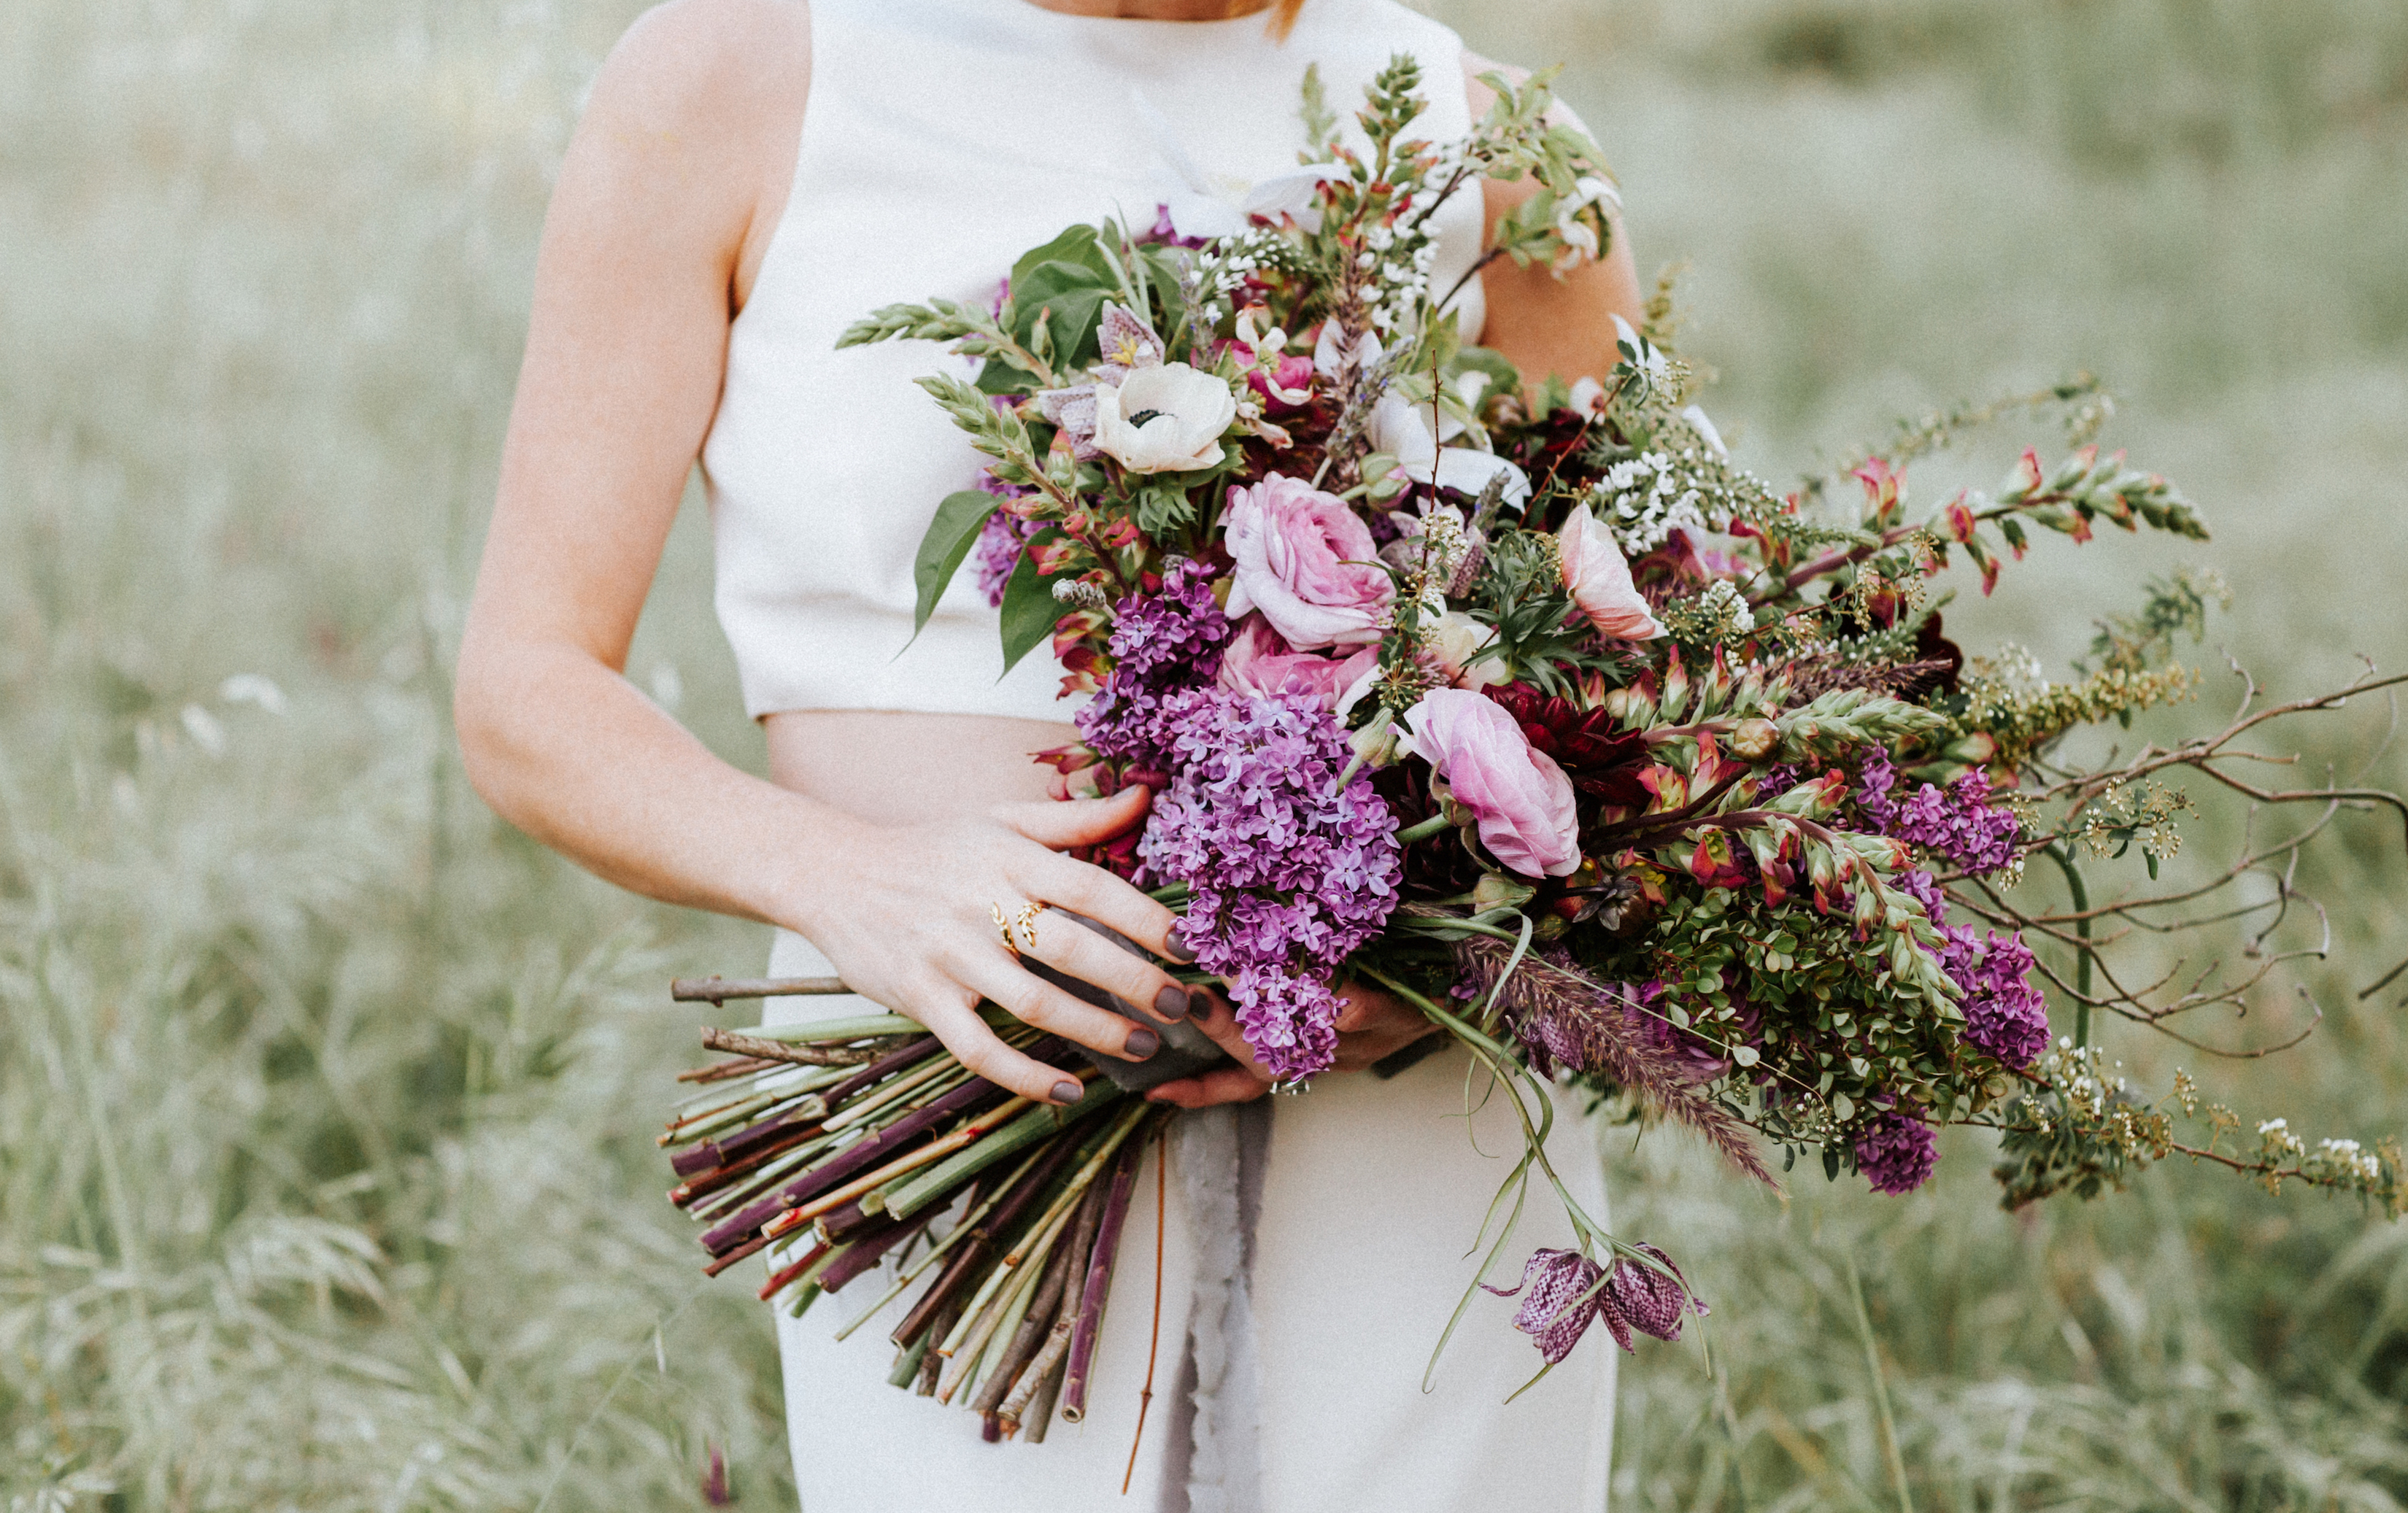 Hand-Gathered Bouquet